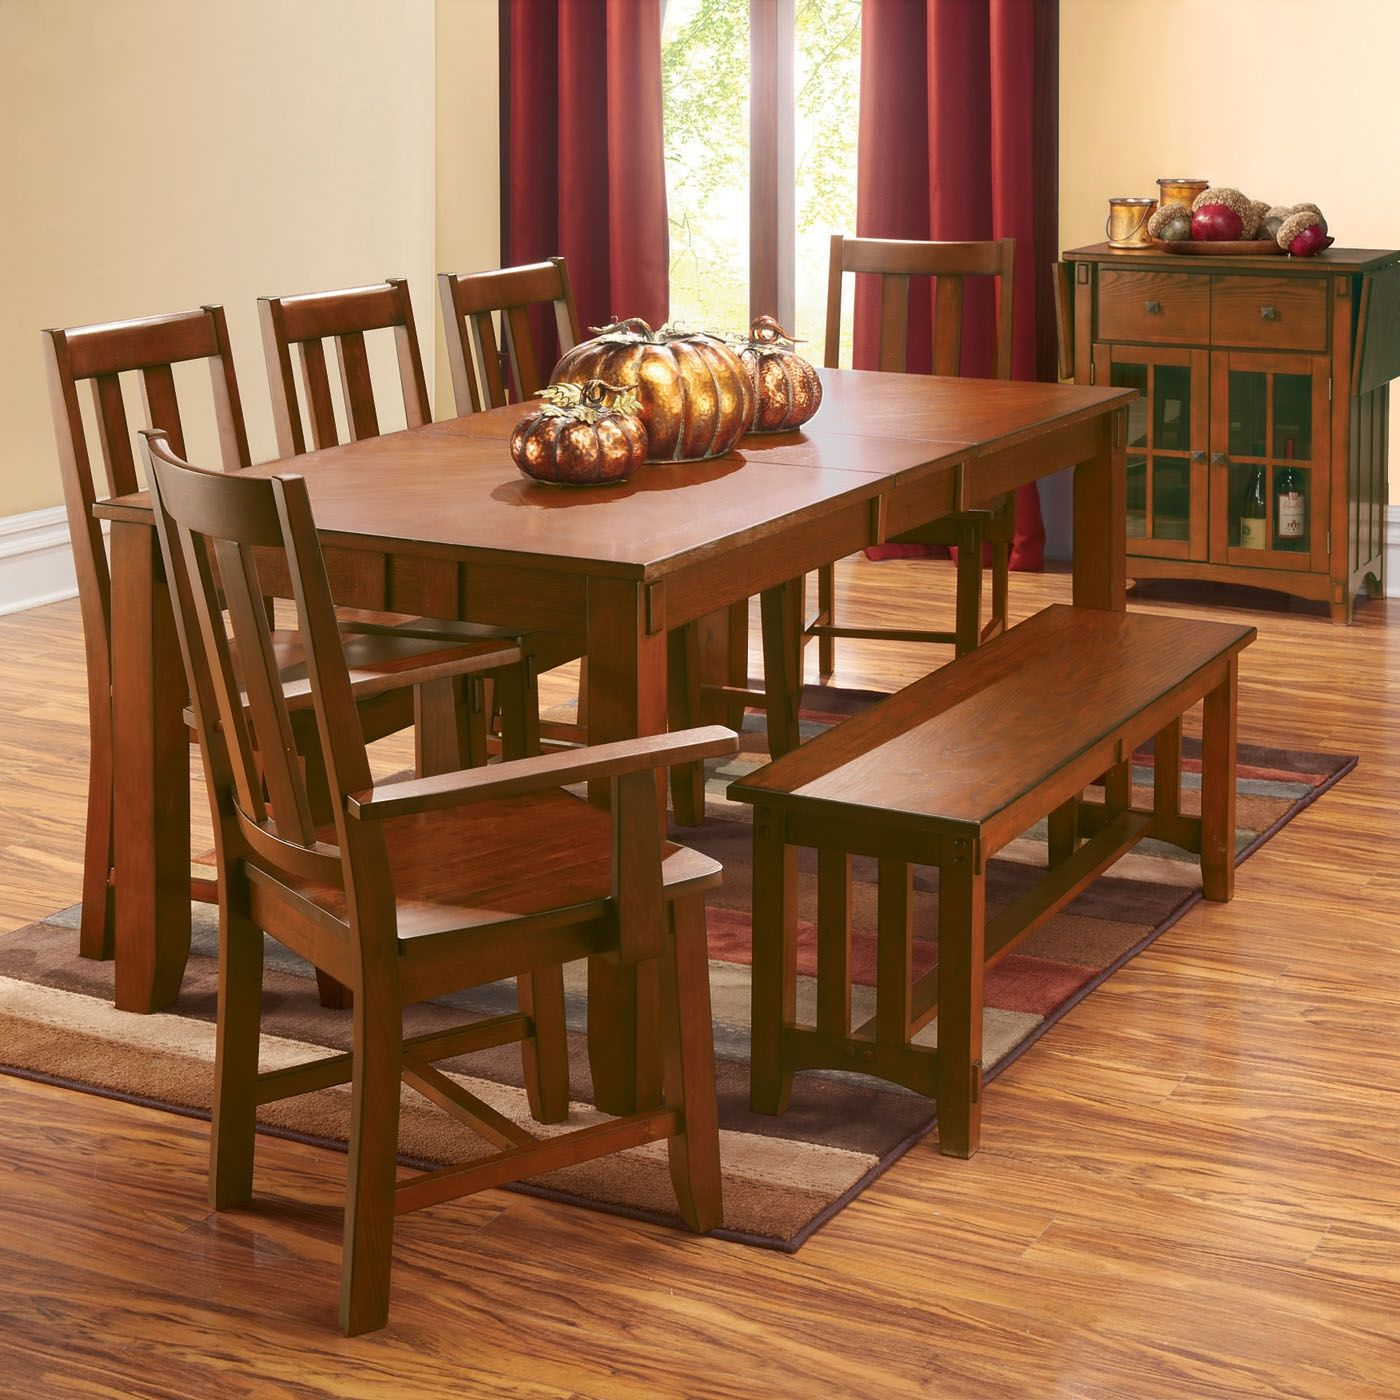 Shopko Kitchen Tables Dining tables chairs victory land annadel dining collection dining tables chairs victory land annadel dining collection shopko workwithnaturefo